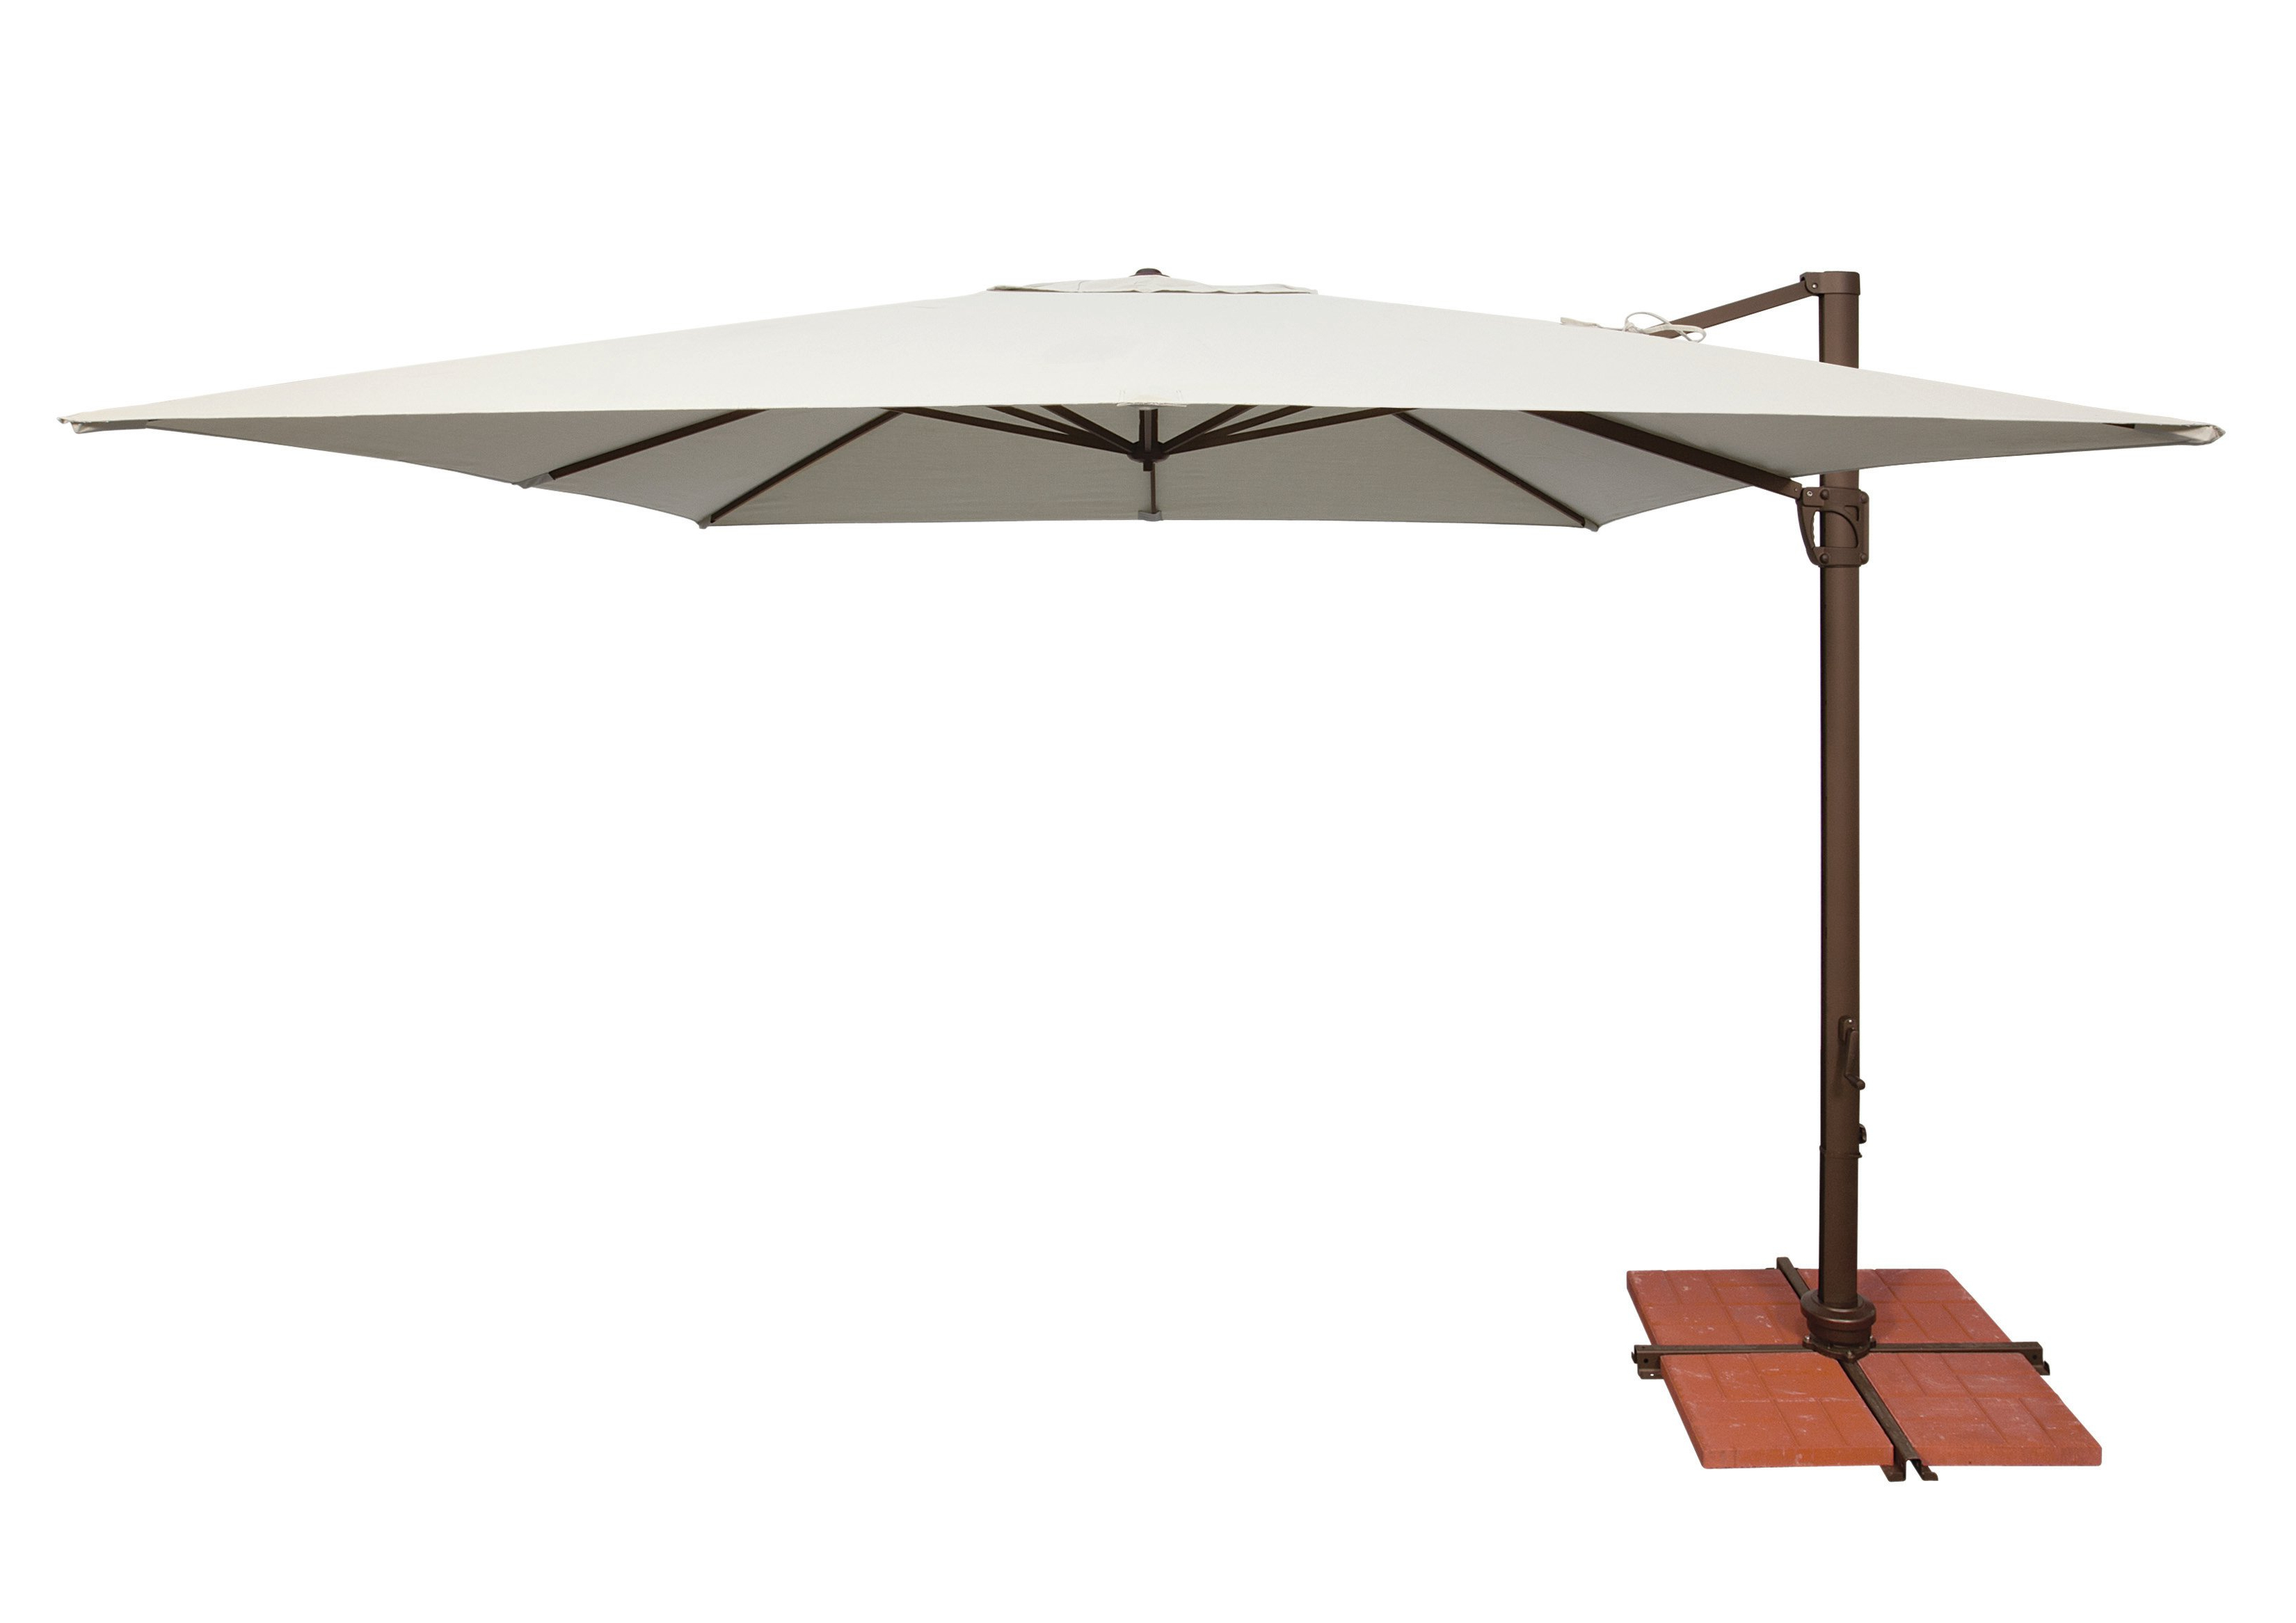 Windell 10' Square Cantilever Umbrella With Regard To Most Recent Spitler Square Cantilever Umbrellas (View 20 of 20)